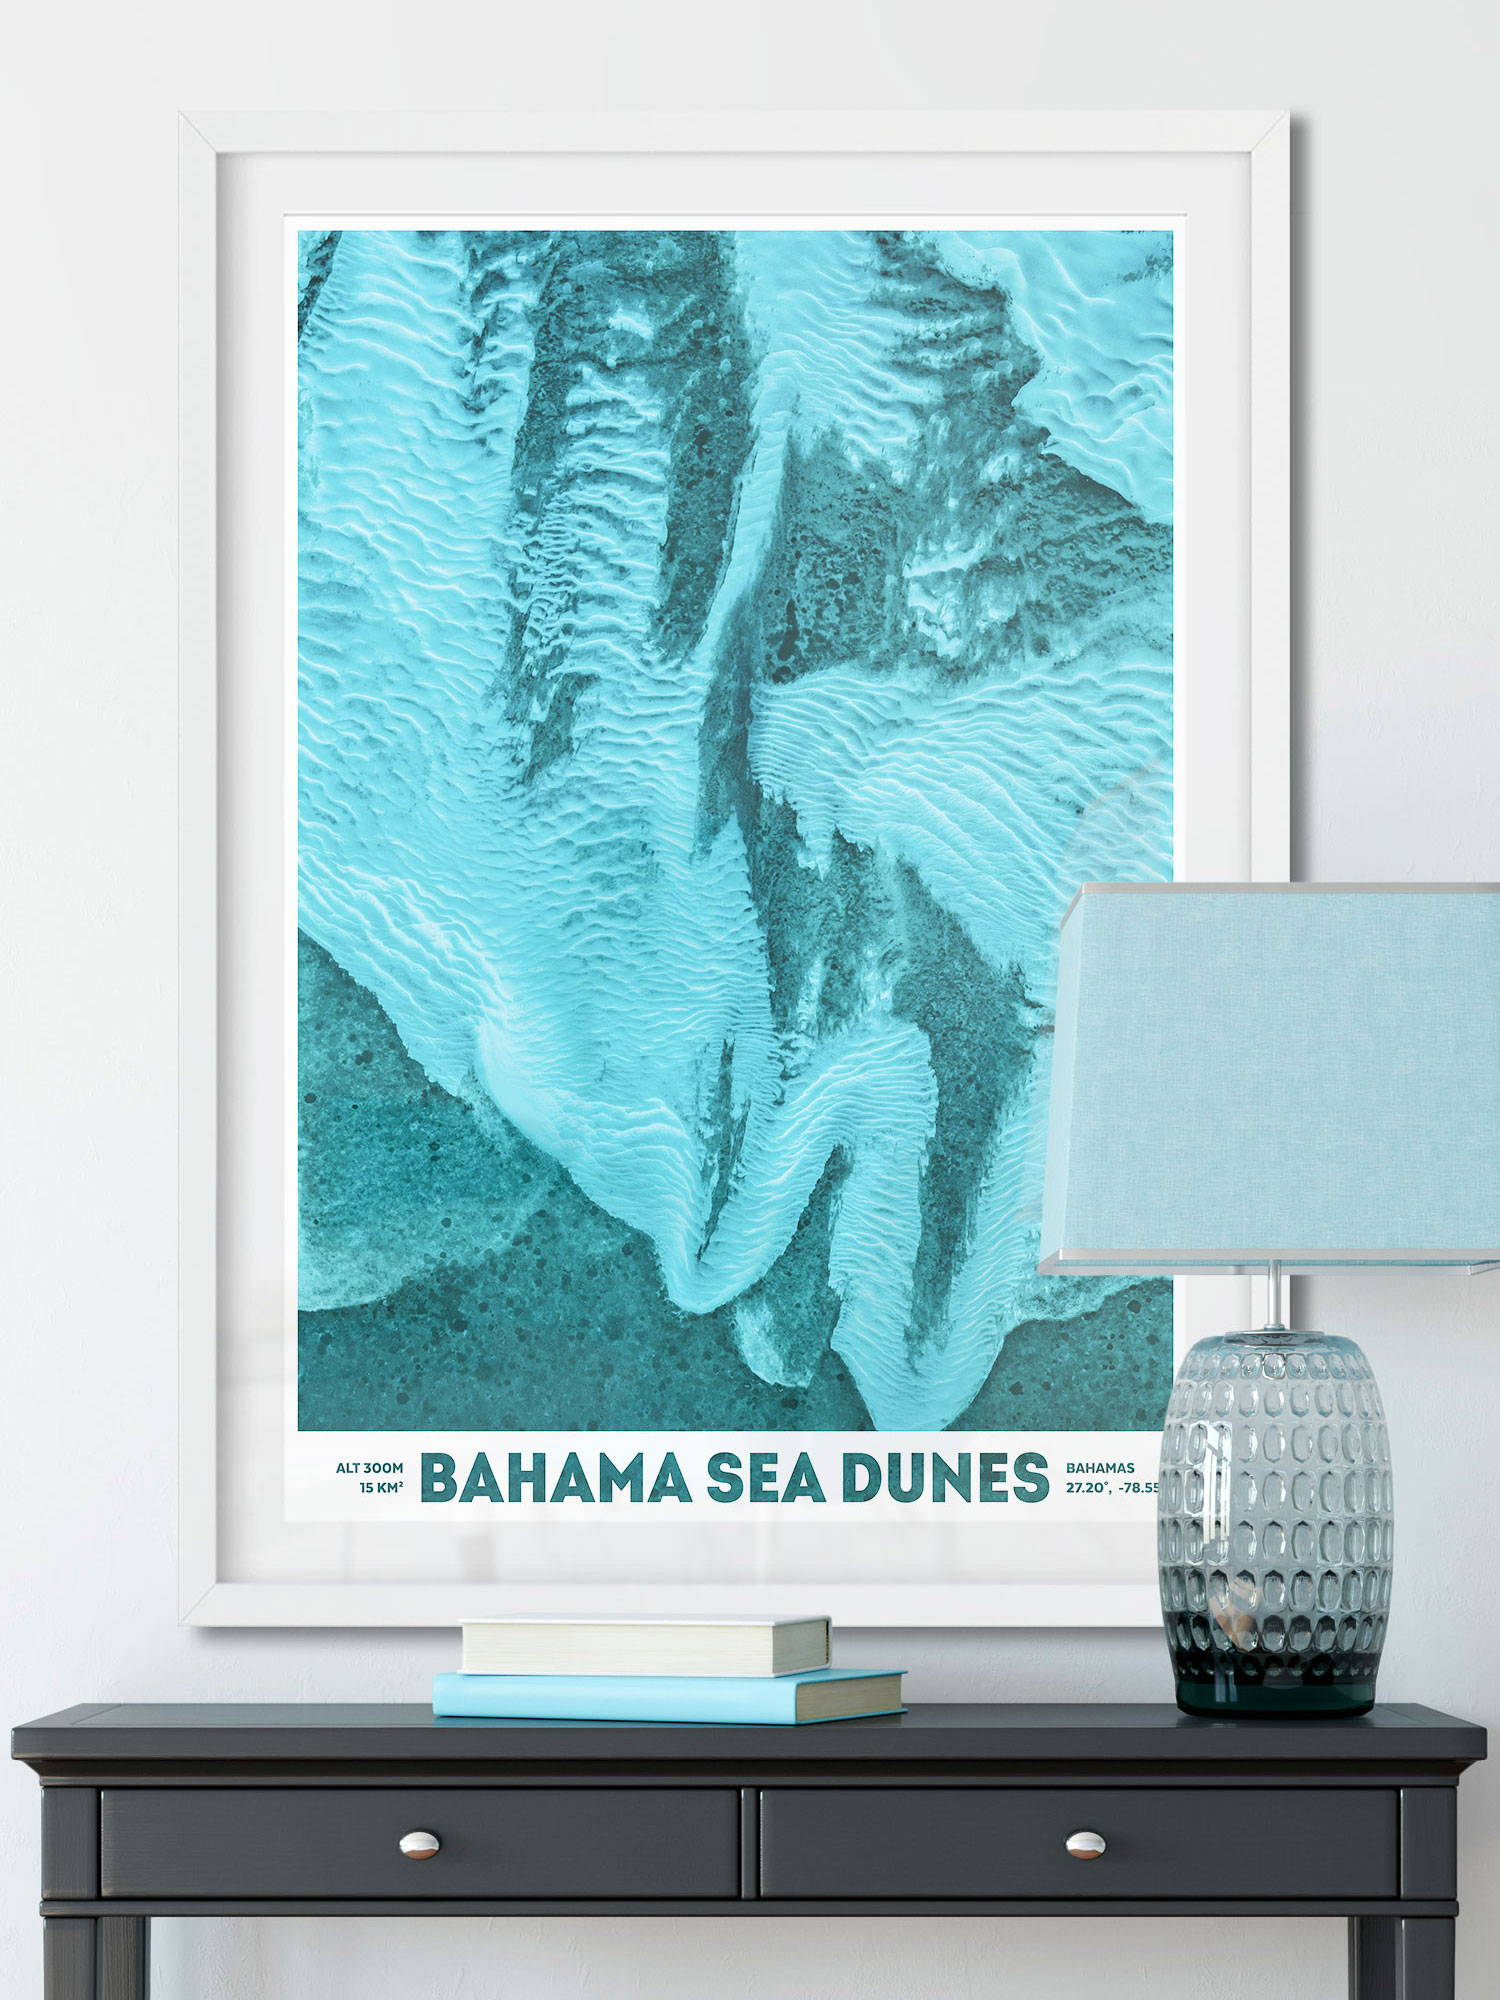 Large photo prints of earth from space of Bahama Sea Dunes